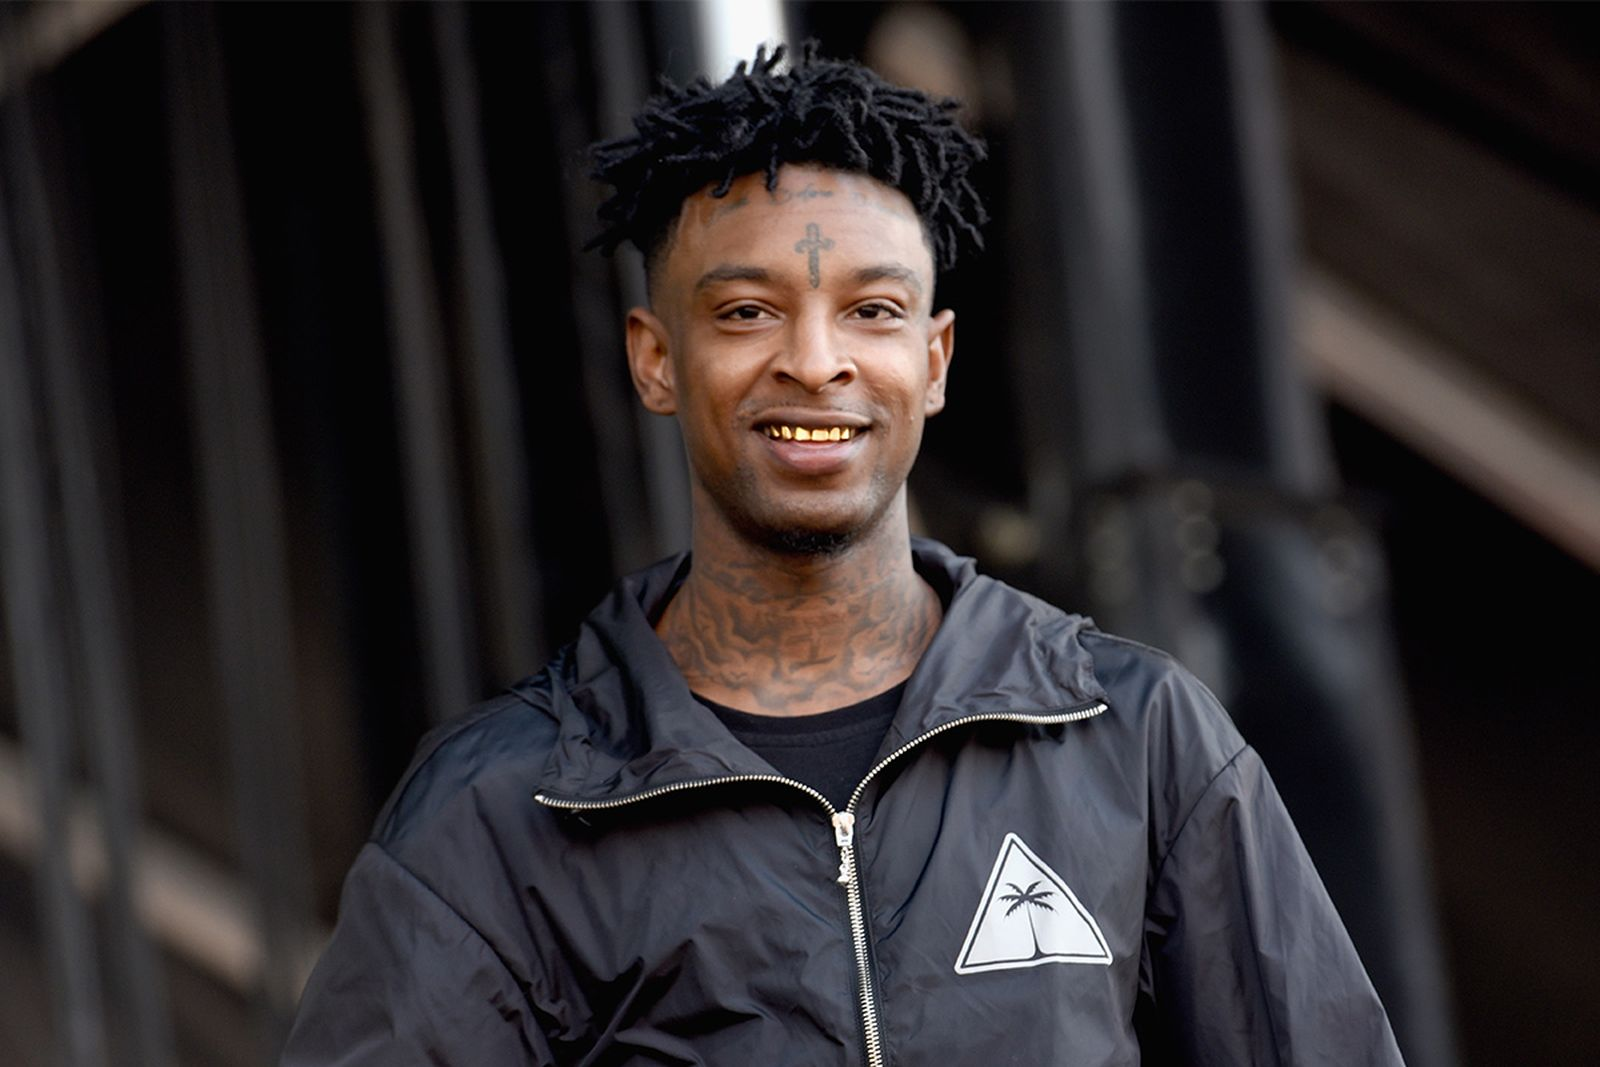 21 savage launches campaign to teach financial literacy 21 savage launches campaign to teach